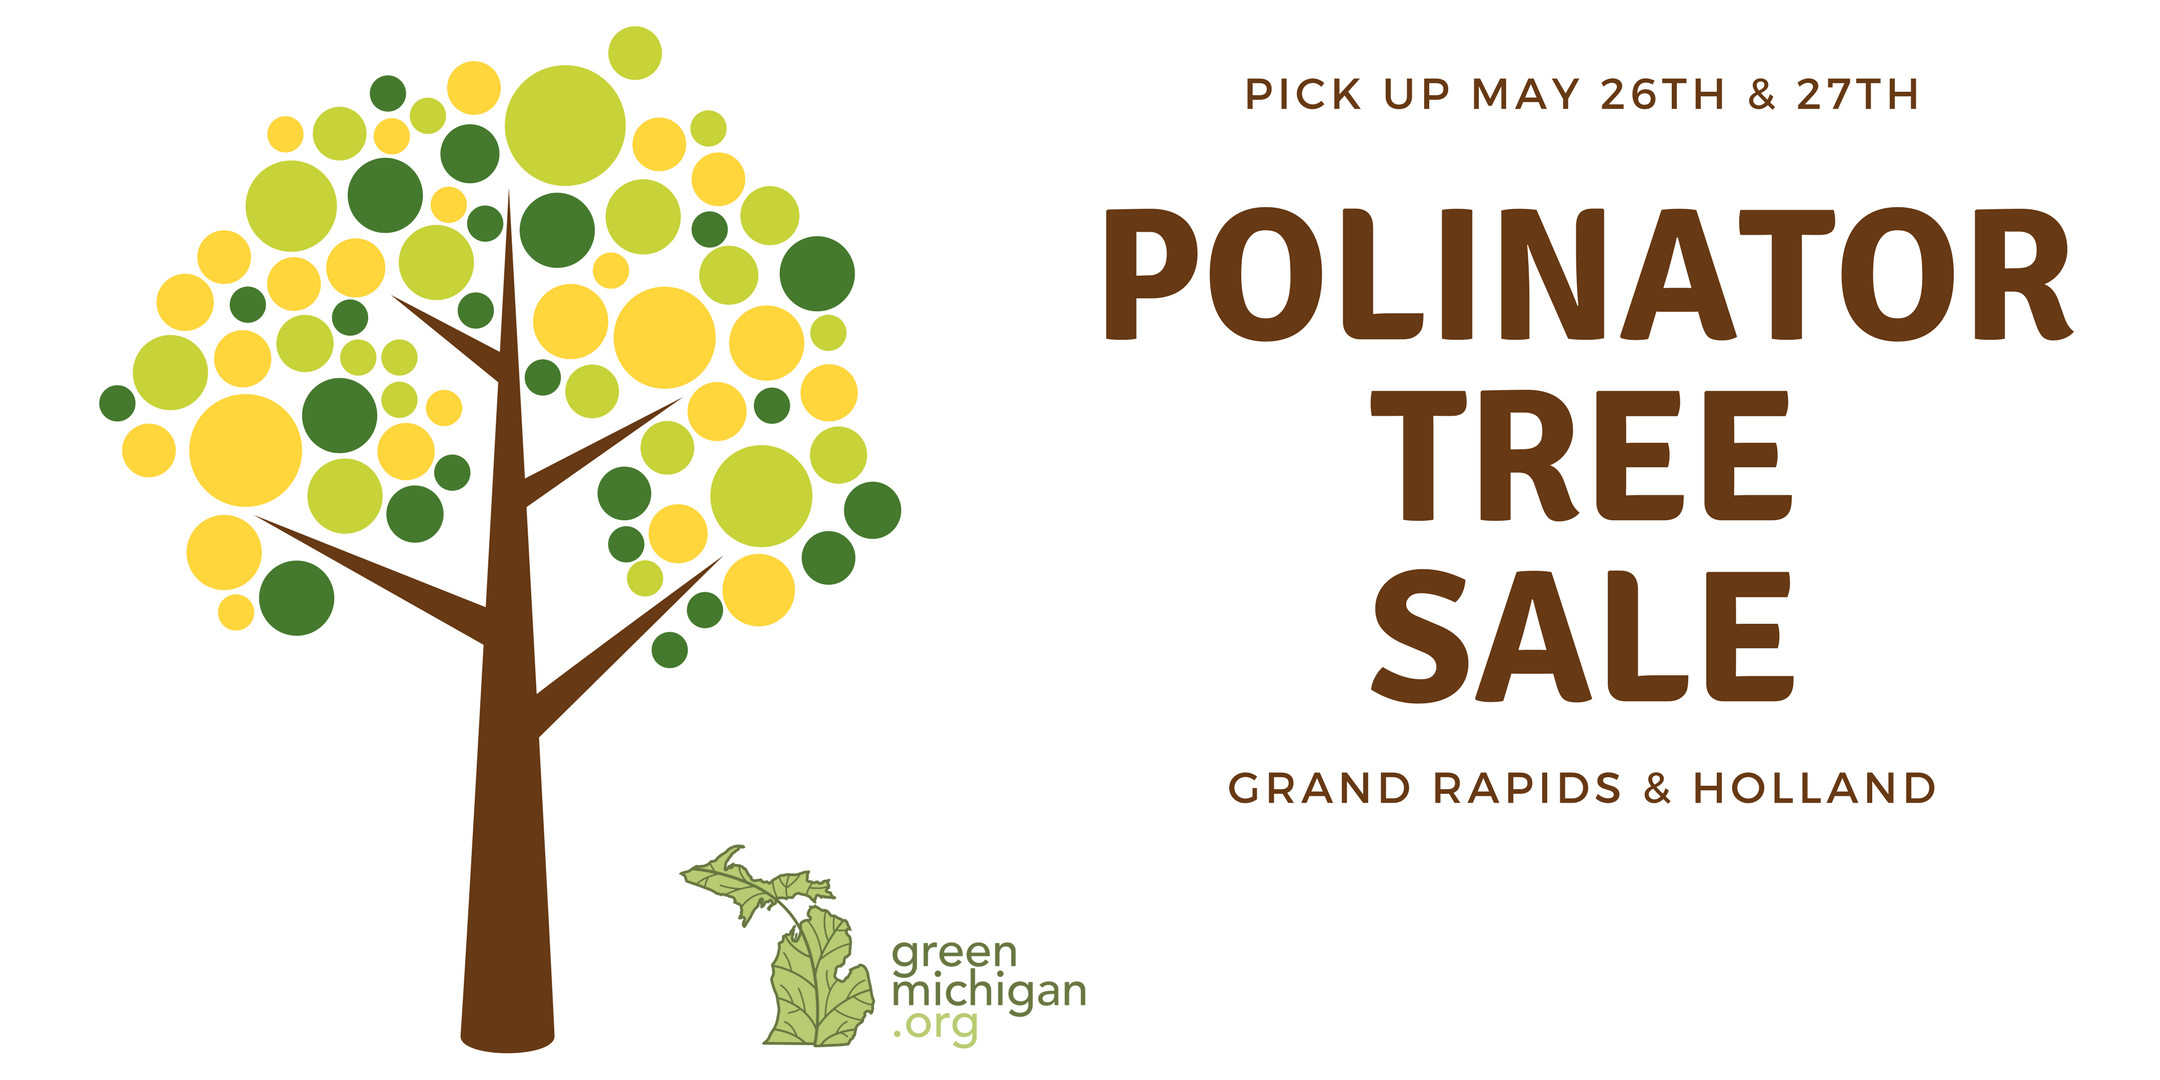 28 Fantastic Green Vase Zelkova for Sale 2021 free download green vase zelkova for sale of pollinator tree sale green michigan for we are excited to announce that we are partnering with honeytree nurseries for a fundraiser tree sale the best part abo